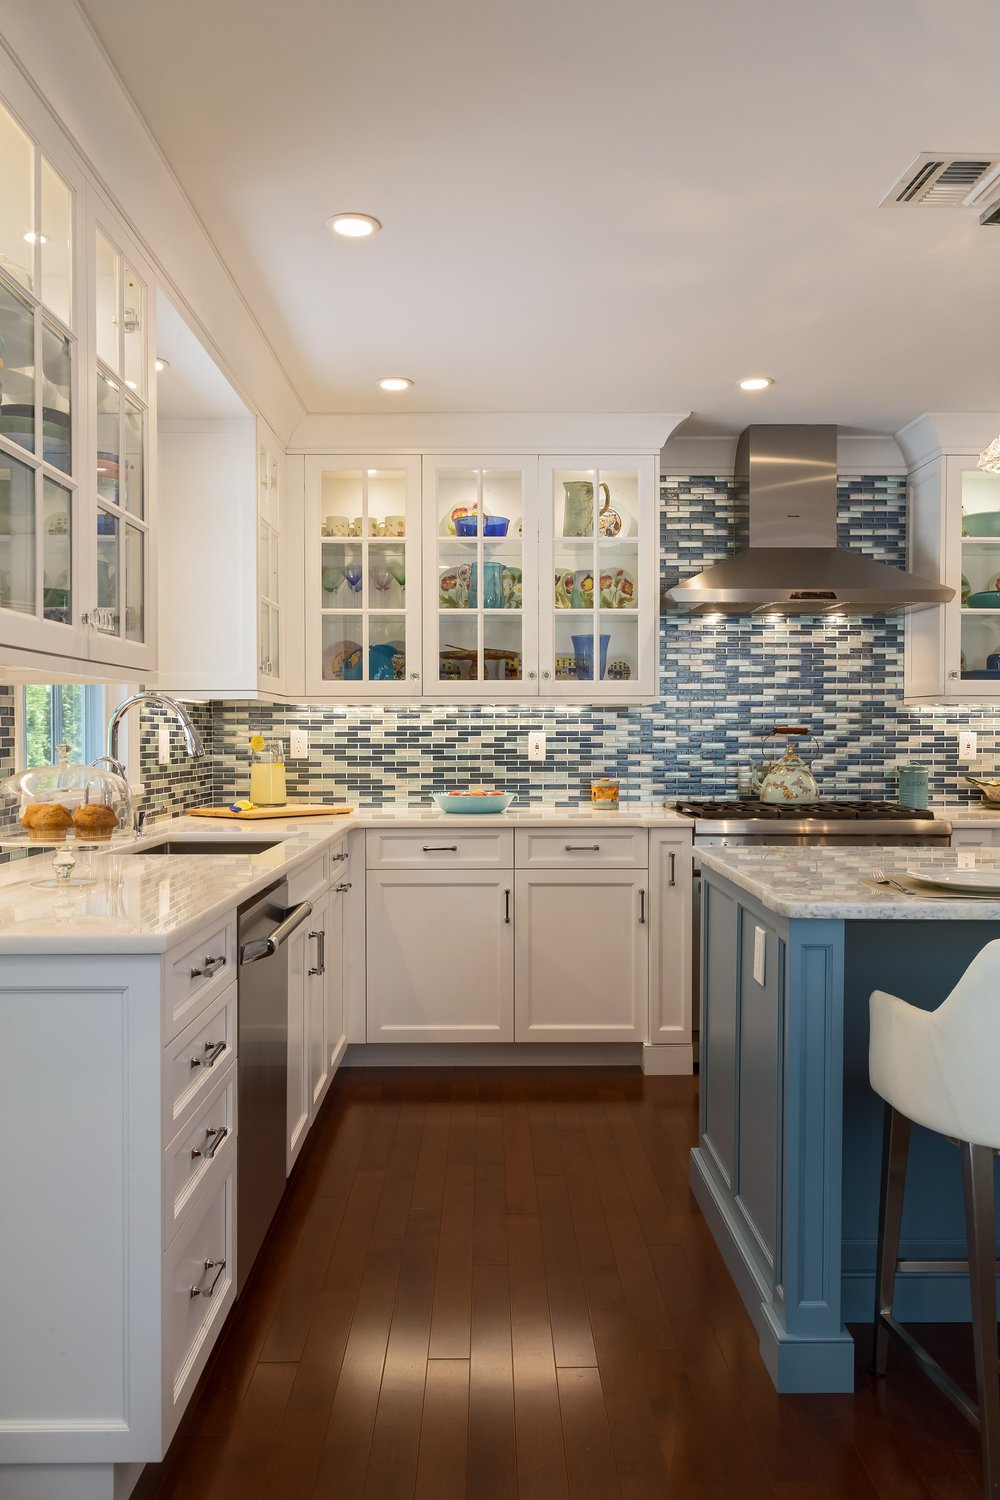 Transitional style kitchen with upper cabinets and pull out drawers